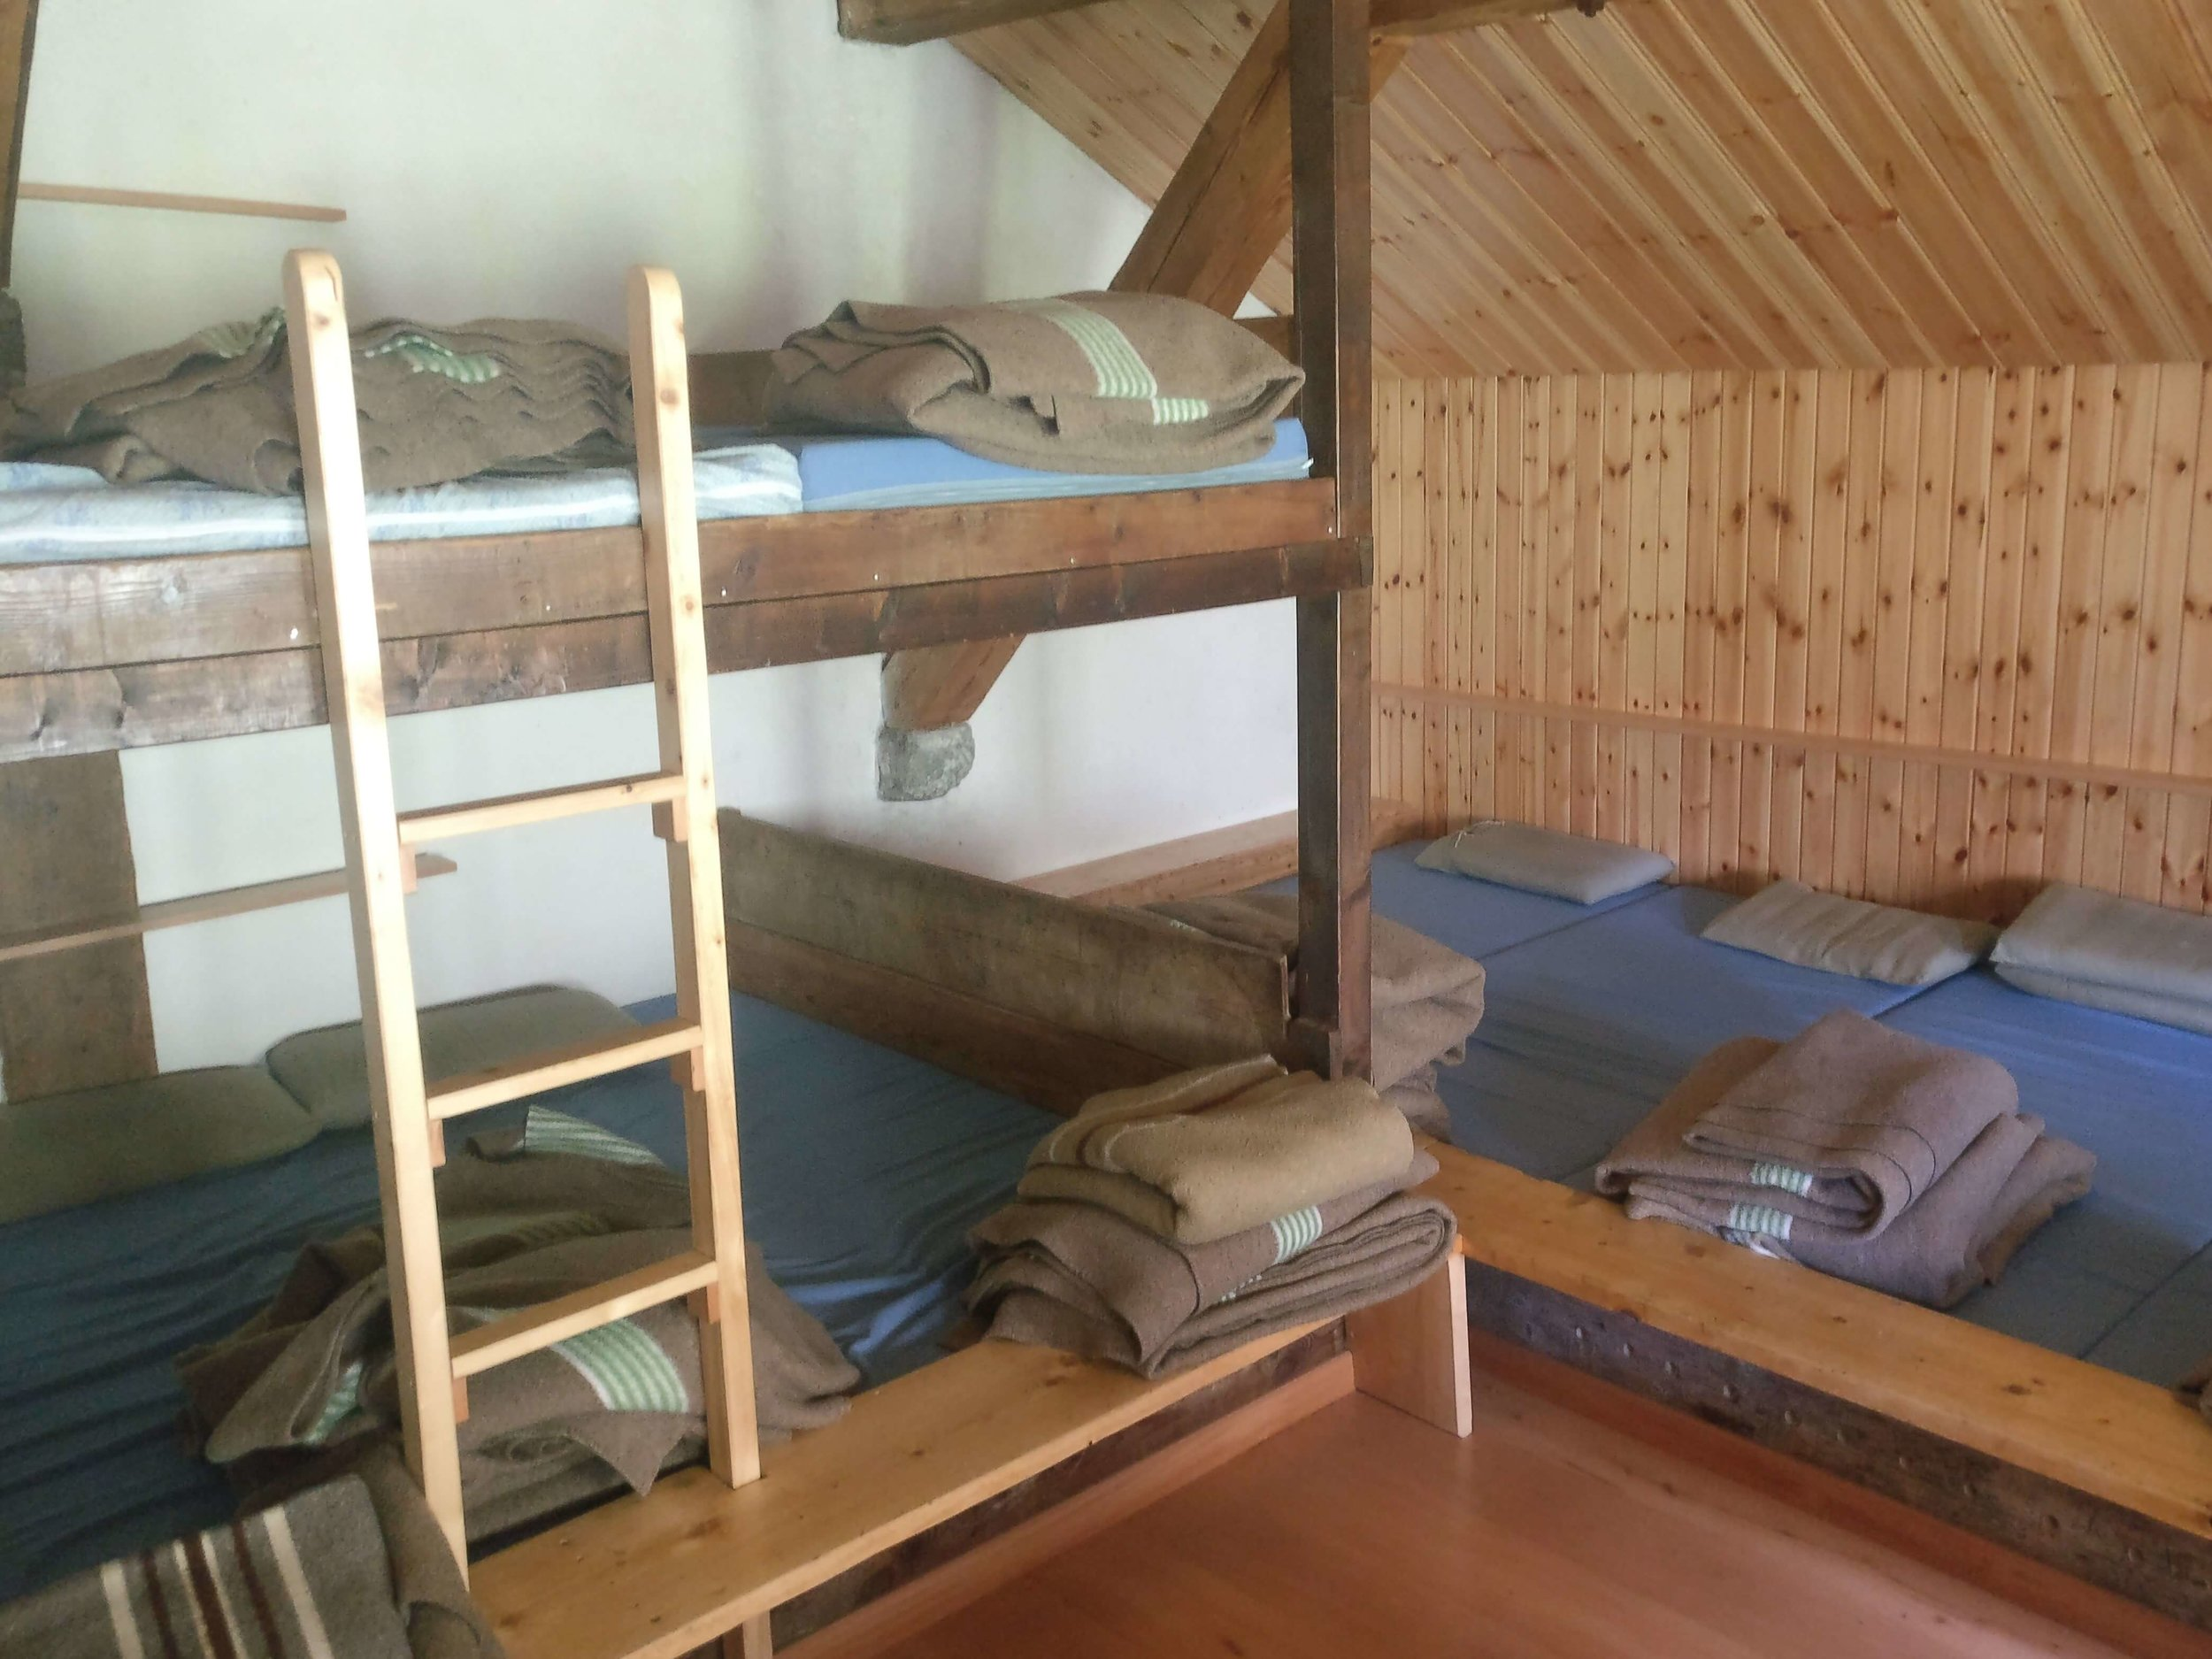 Staying in dorms on the Walker's Haute Route is a cost effective accommodation choice